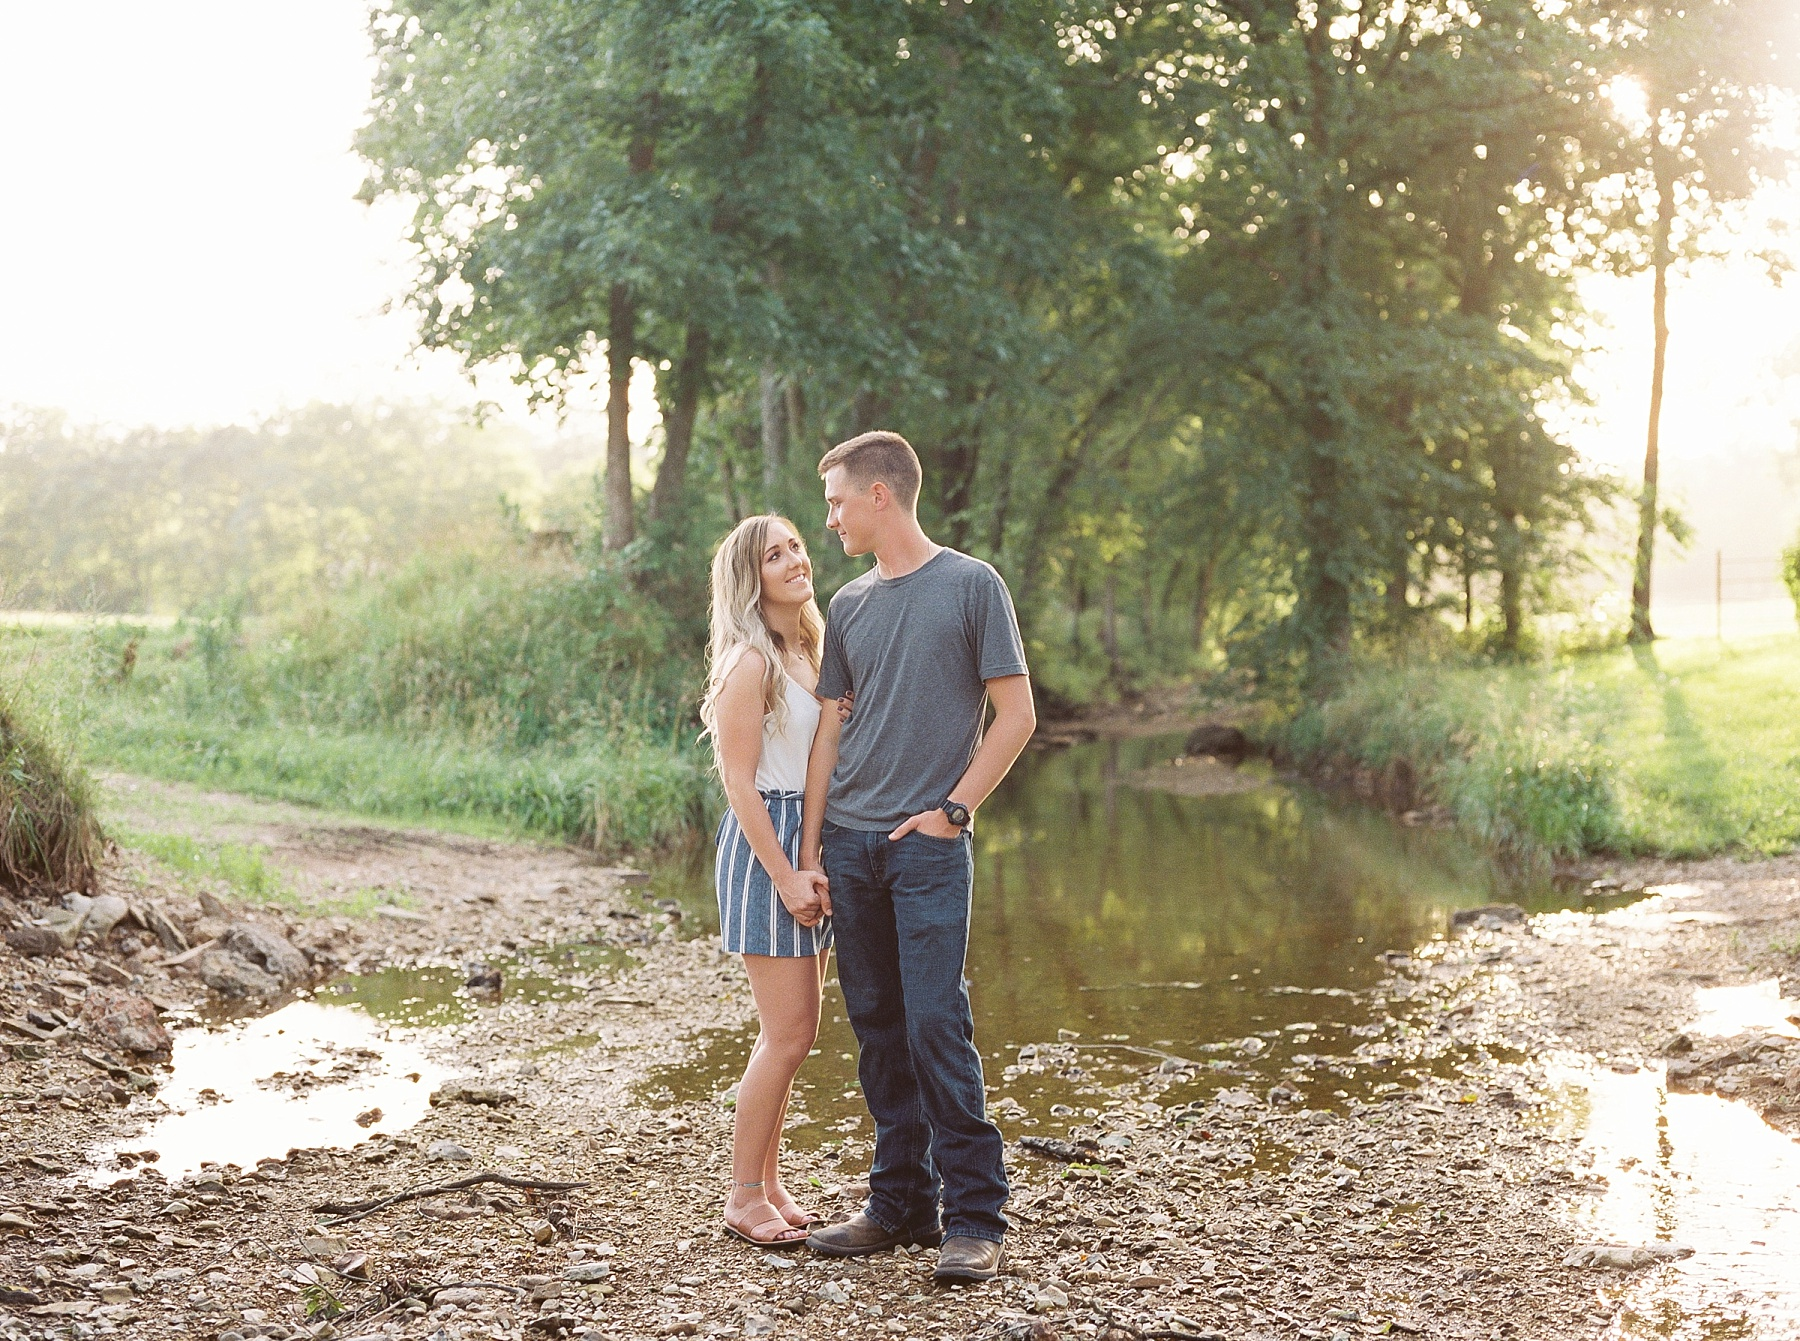 Golden Hour Summer Engagement Session at Lakeside Valley and Vineyards at Kempkers Back 40 by Kelsi Kliethermes Photography Best Missouri and Maui Wedding Photographer_0006.jpg